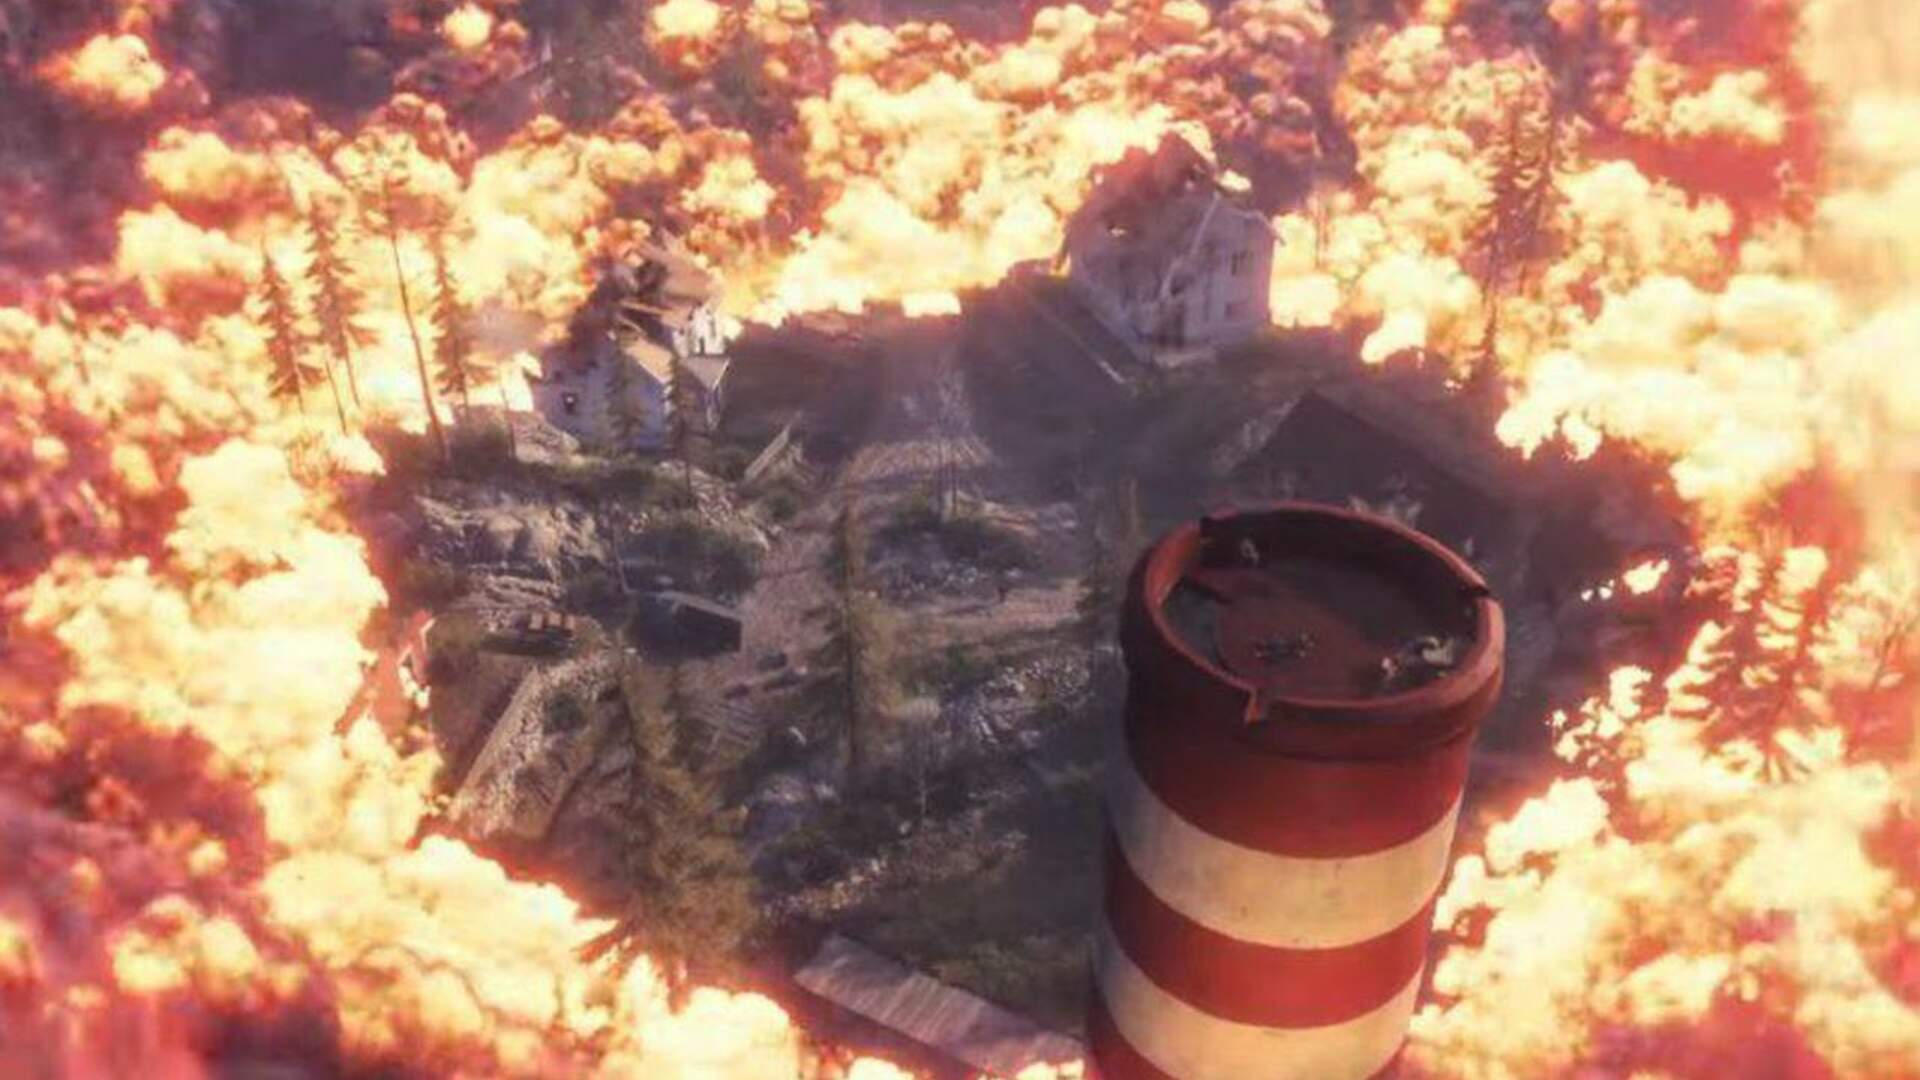 Battlefield 5 Firestorm Release Date Confirmed for Later this Month